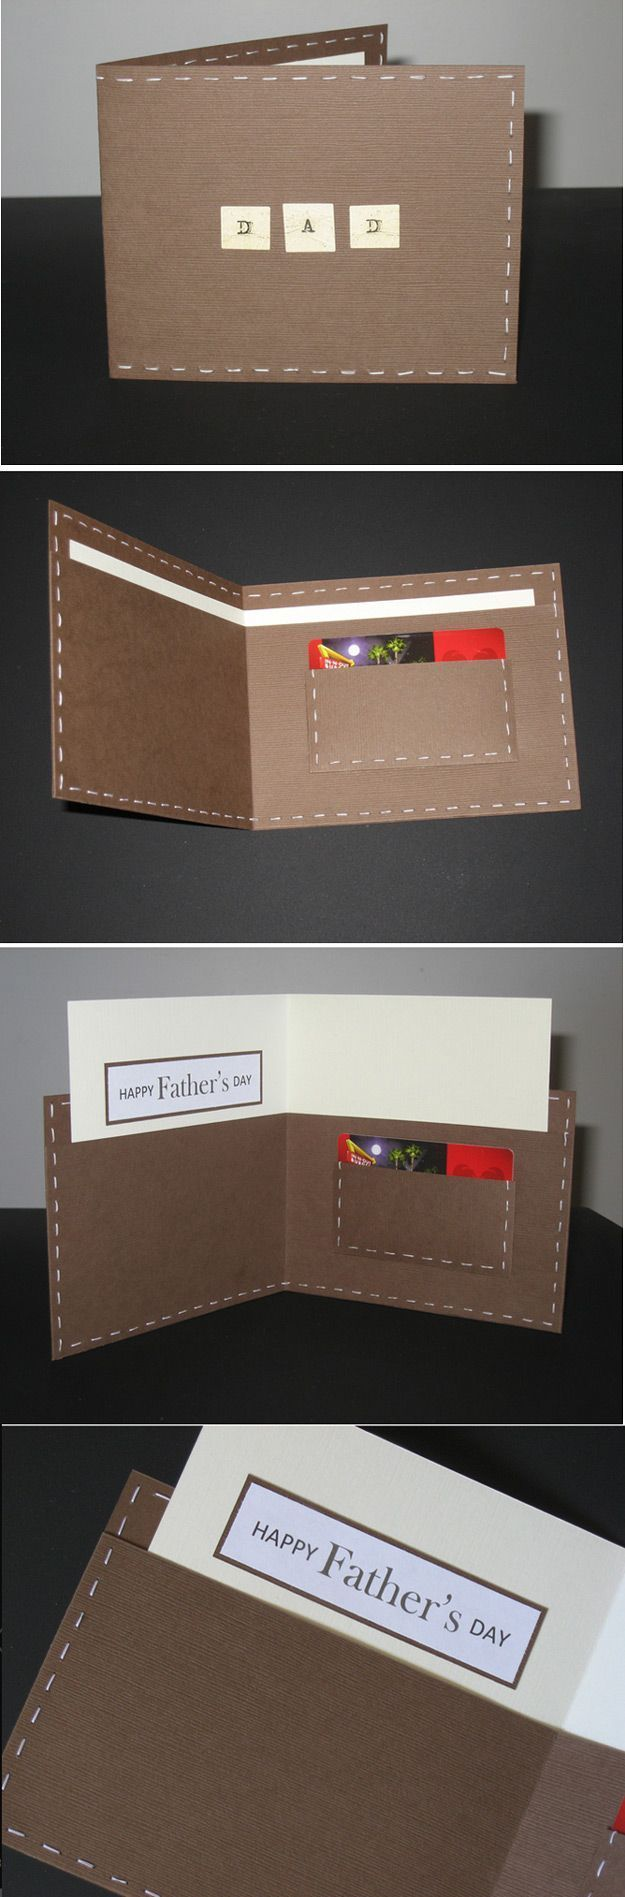 Cool DIY Fathers Day Card Ideas   DIY Wallet Card by DIY Ready at http://diyready.com/21-diy-fathers-day-cards/